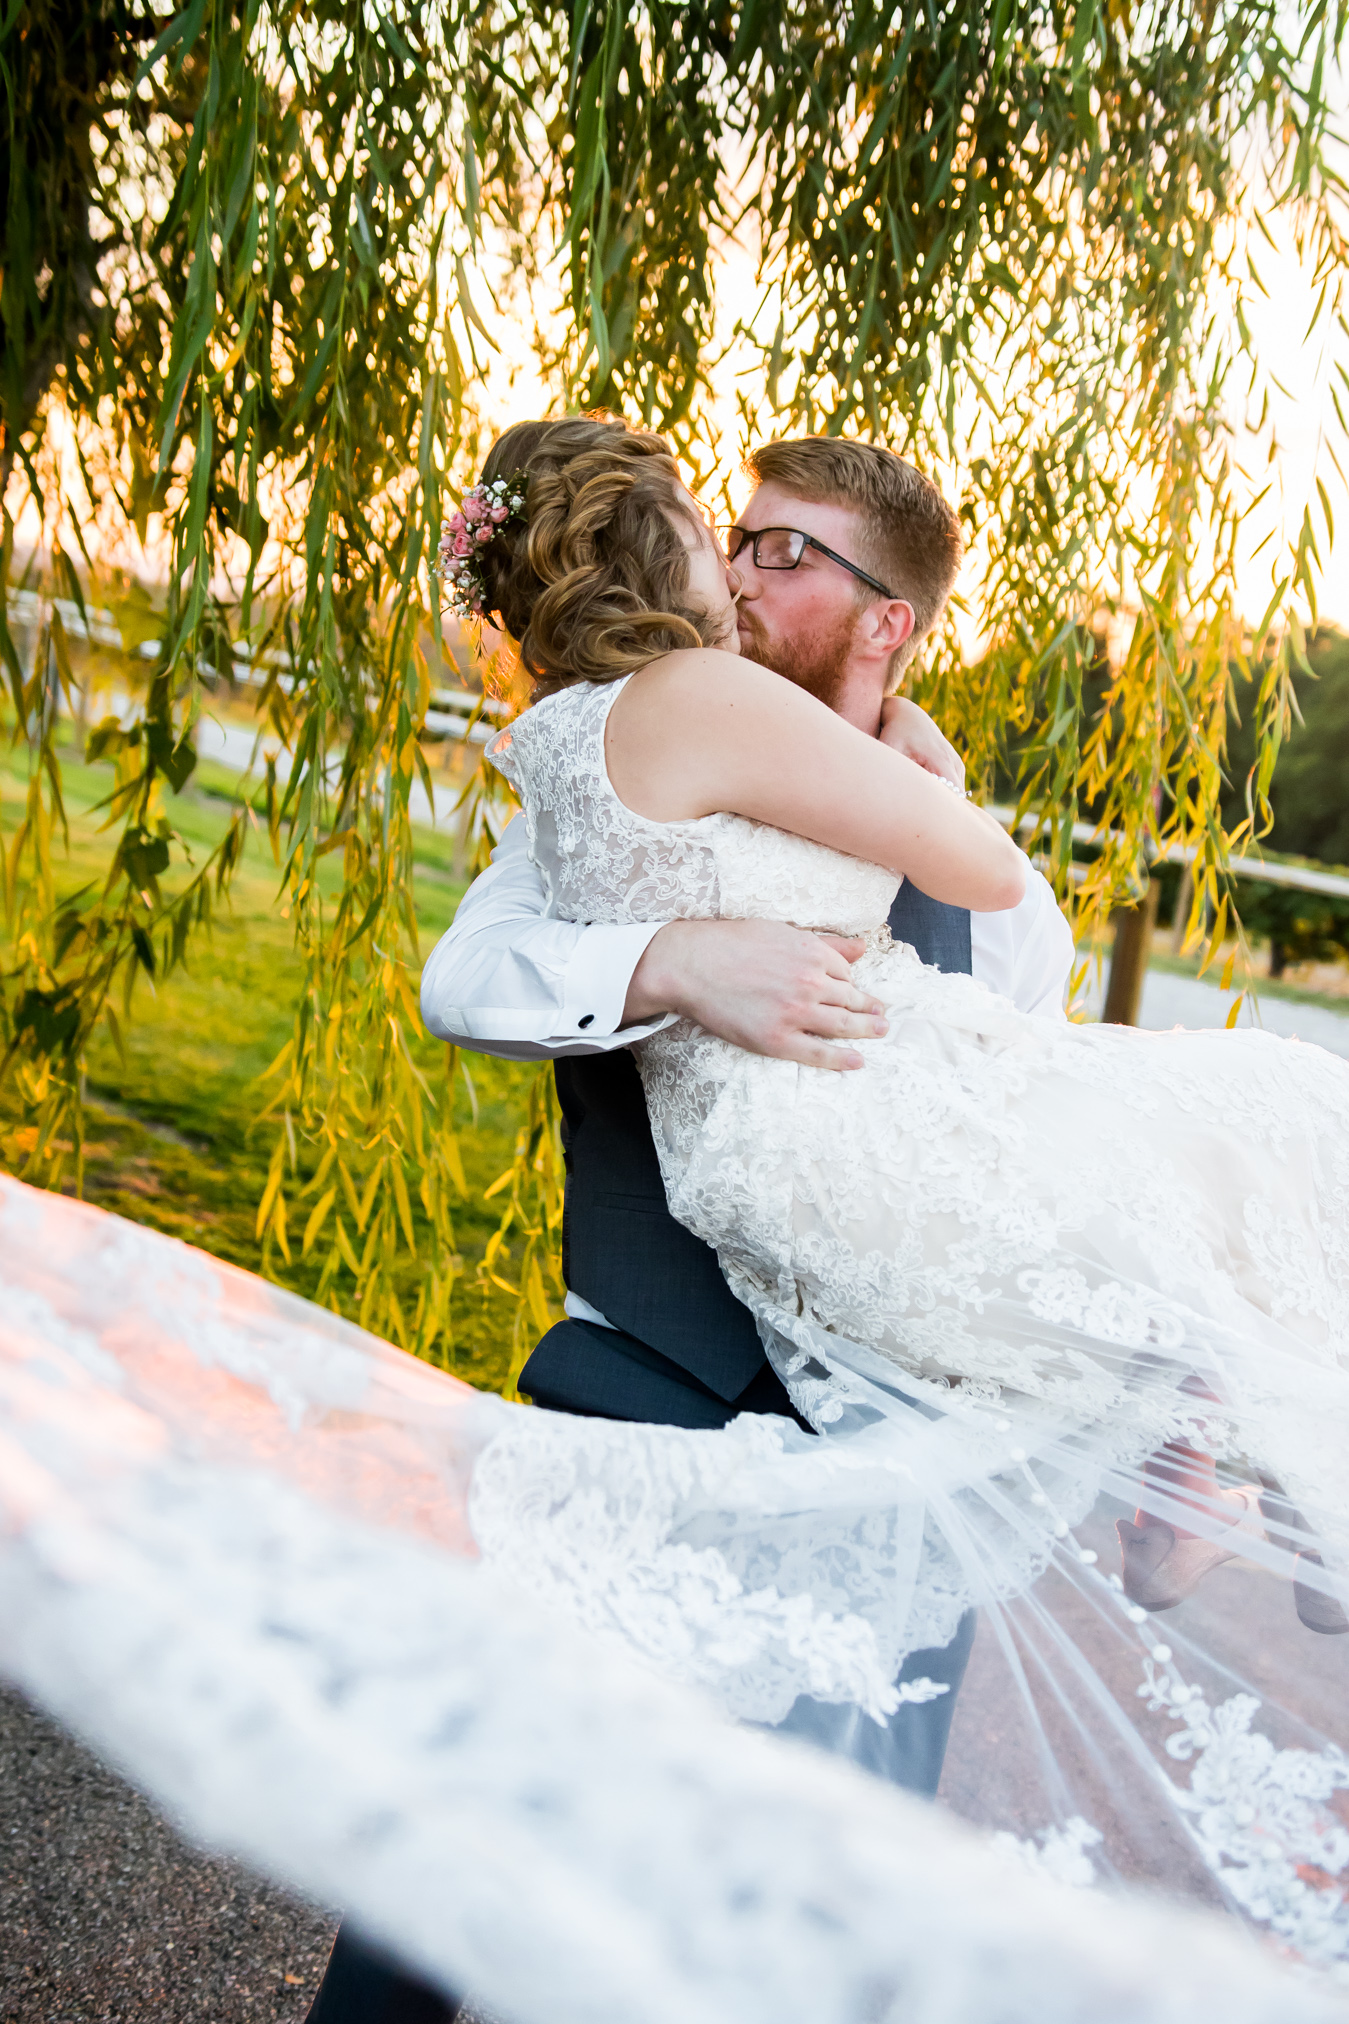 Indiana_Wedding_Photography_Vinings-7.jpg